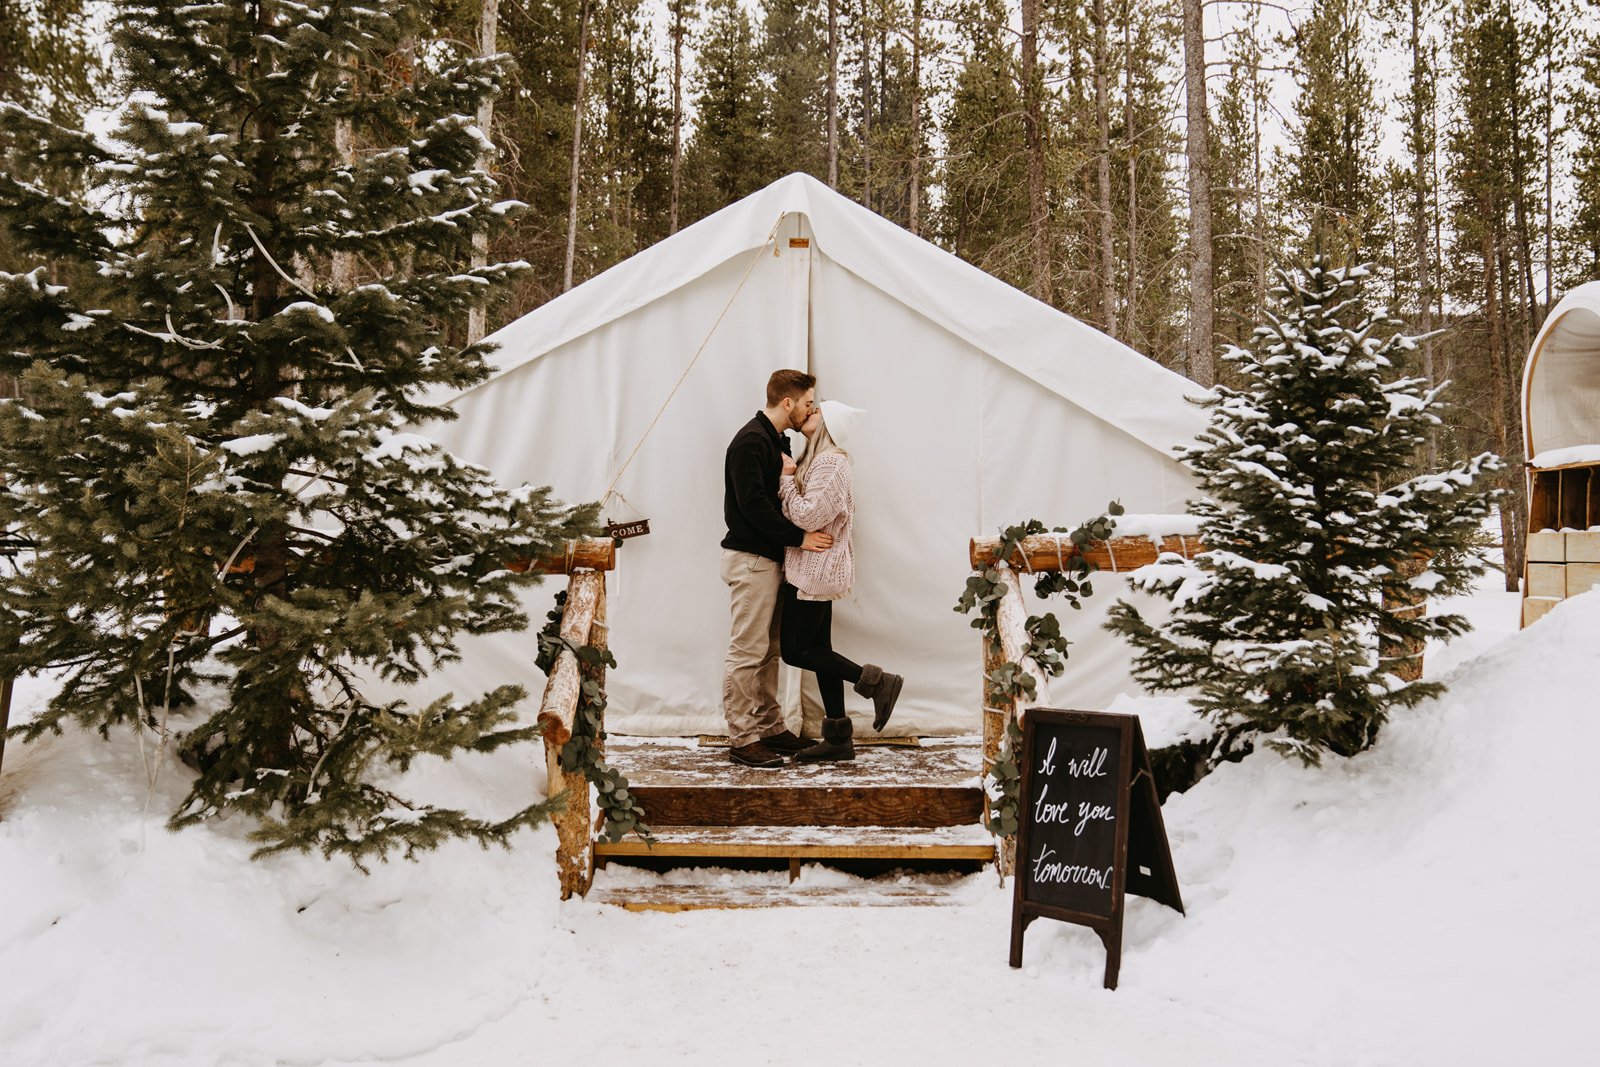 Knotted Proposals & Events   Wedding & Event Planner in Roaring Fork Valley, Colorado featured on WED West Slope - a directory for wedding vendors.